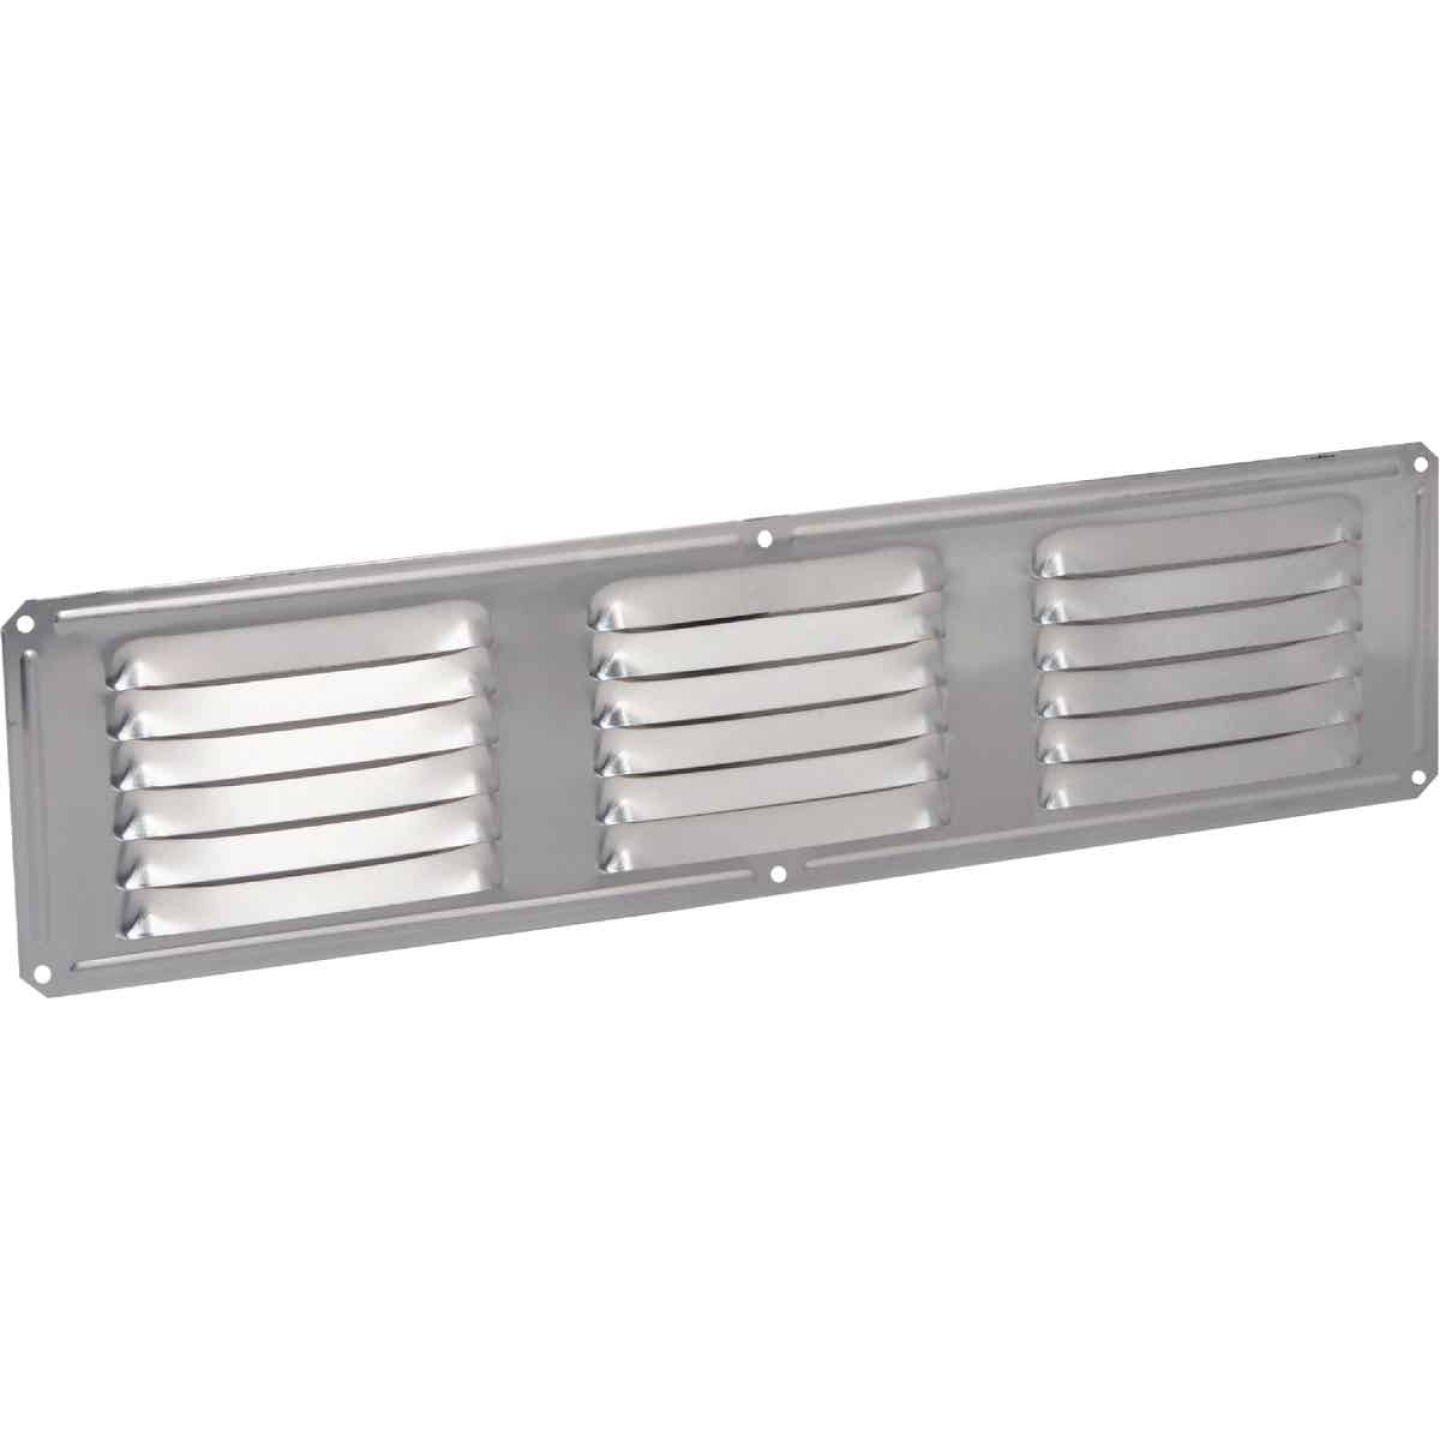 Air Vent 16 In. x 4 In. Mill Aluminum Under Eave Vent Image 1